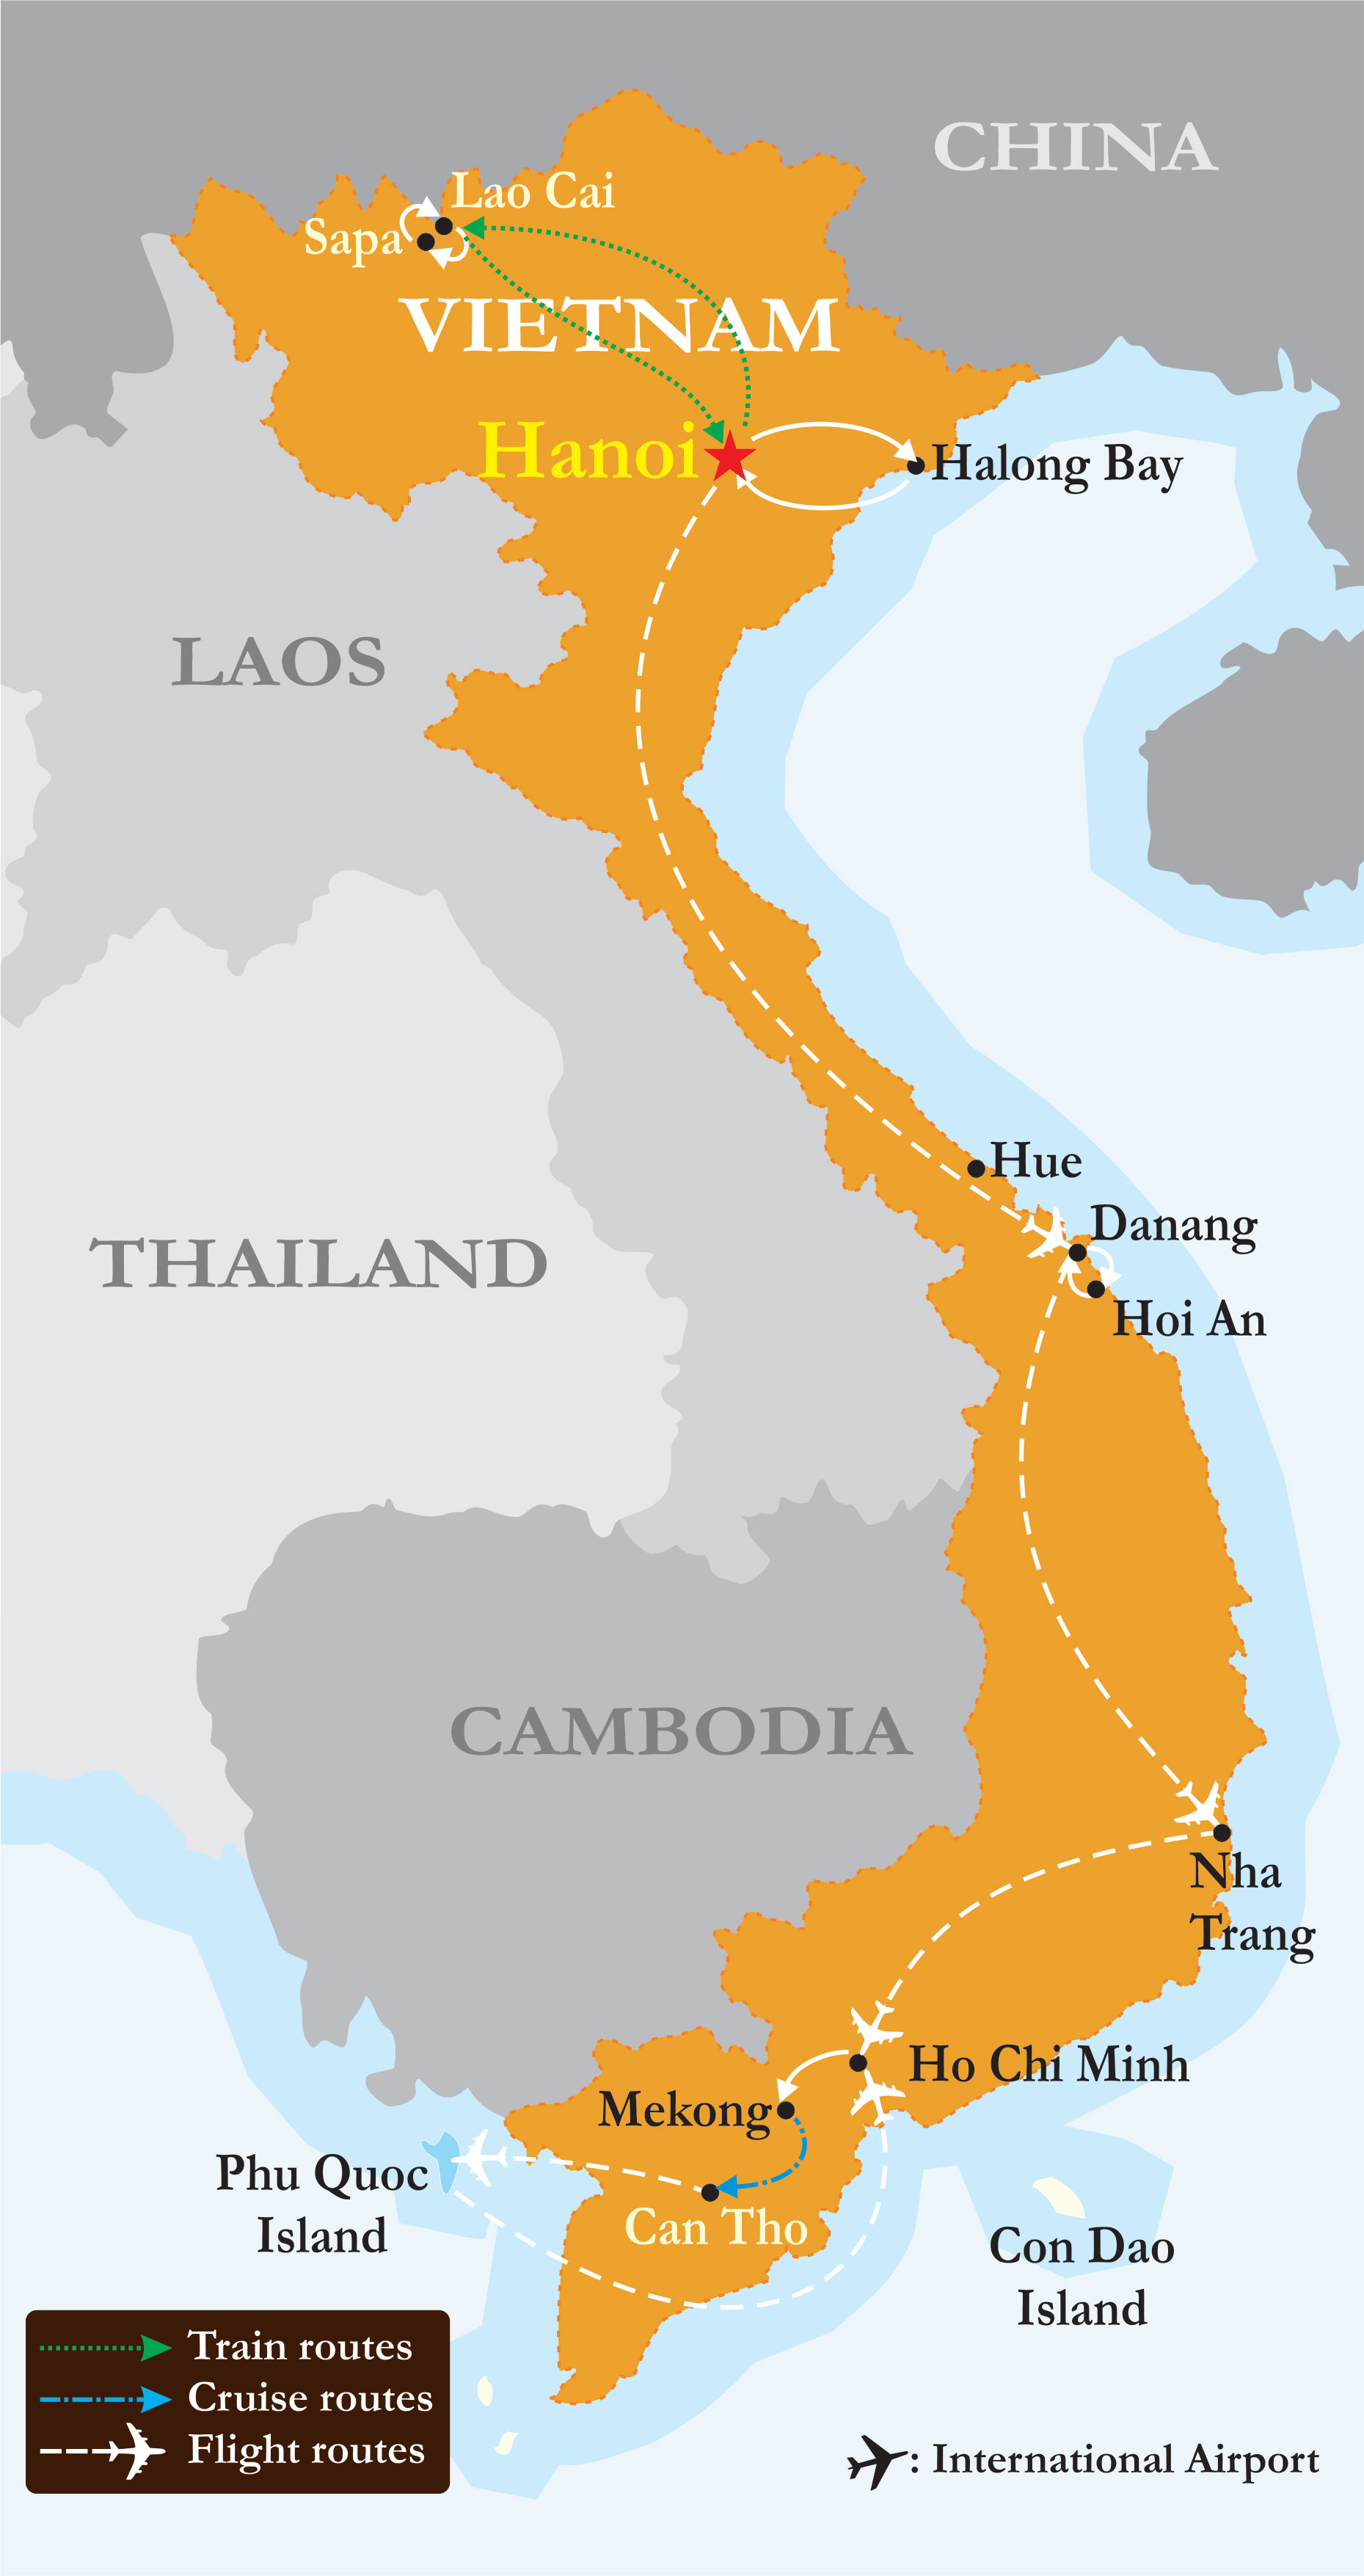 A map of popular tourist destinations in Vietnam. We flew to Hanoi, then went to Cat Ba Island for Ha Long Bay. From Hanoi we took the train to Lao Cai and then bus to Sapa. For our last five days in Vietnam we are flying to Danang tomorrow. We will not be visiting south Vietnam on this trip.